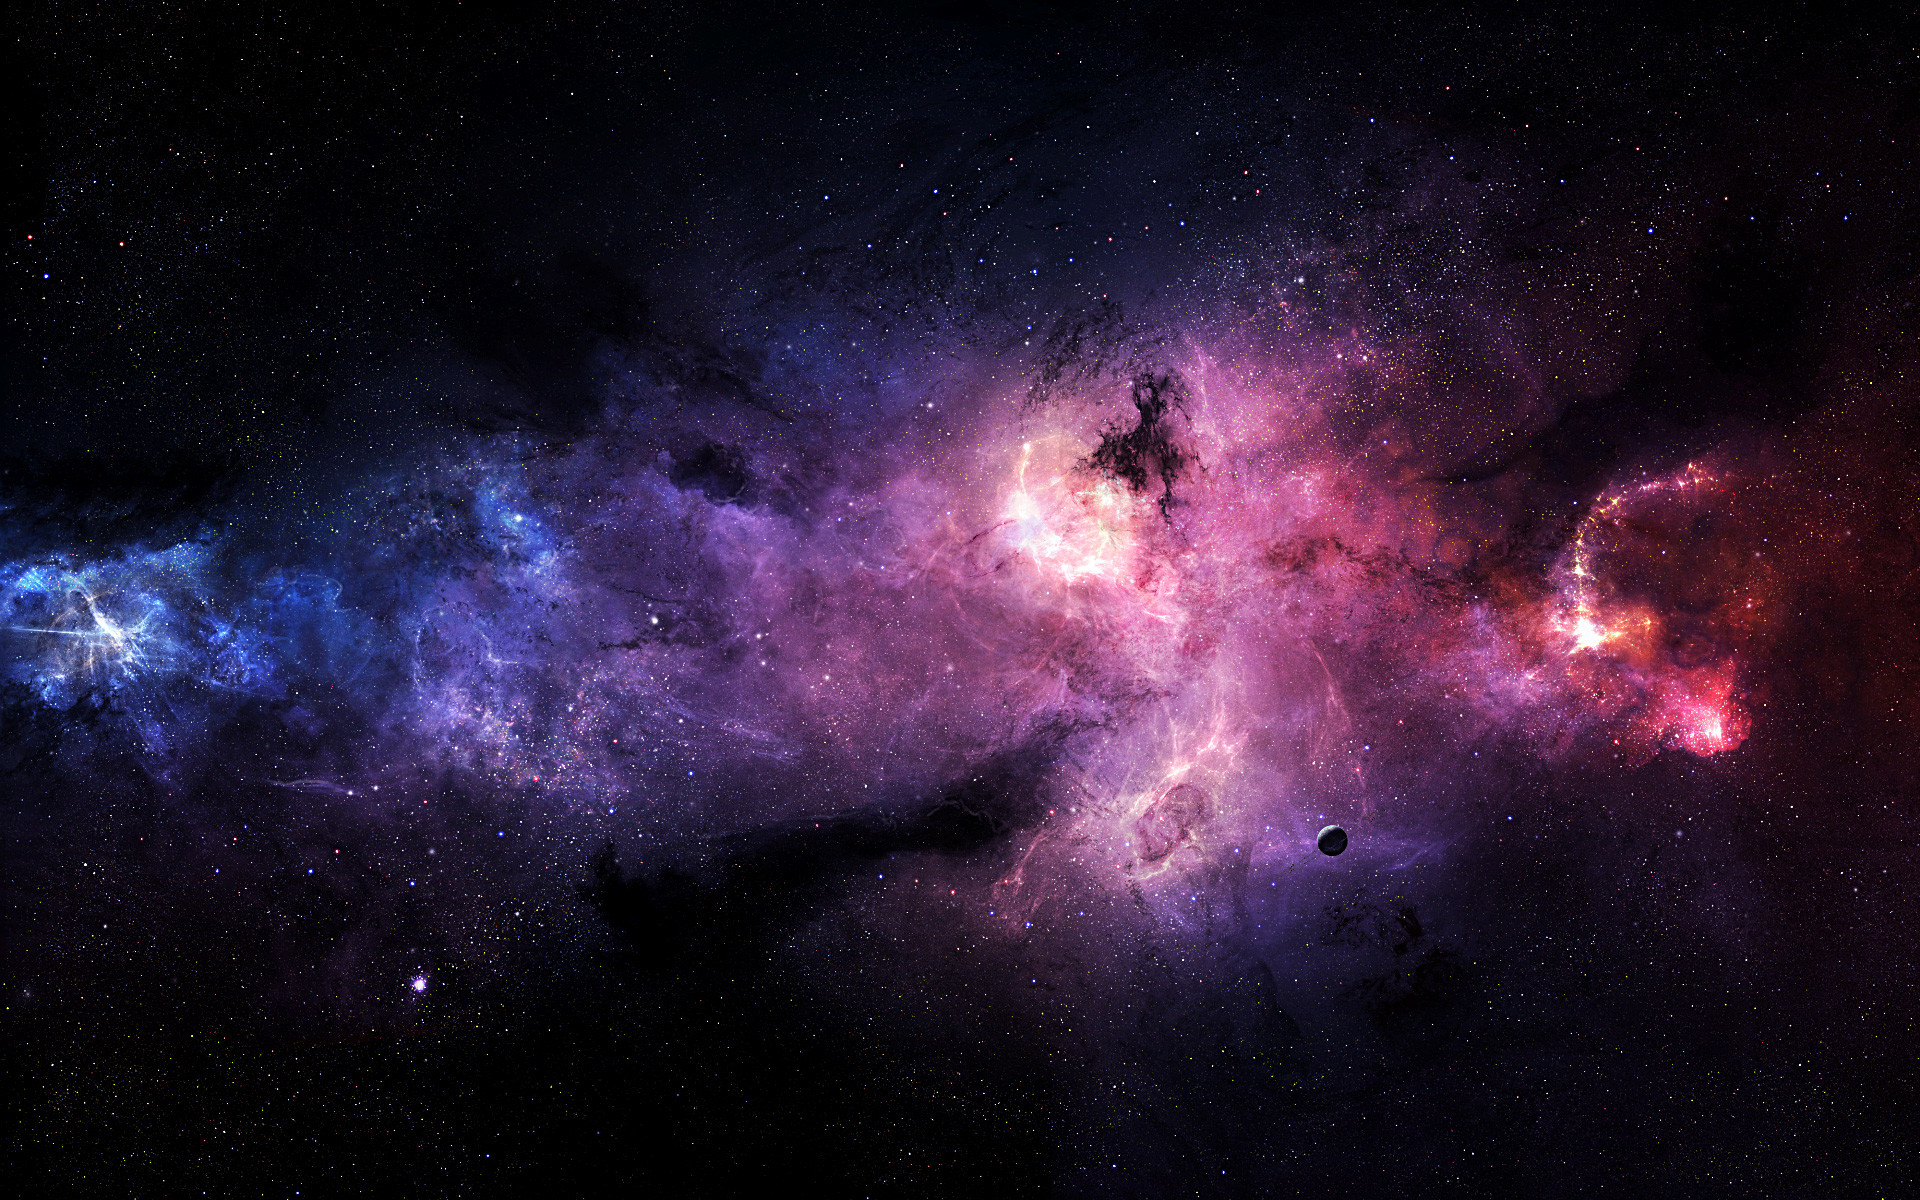 HD Space Wallpapers, Backgrounds 1920×1200 Wallpapers Space (23 Wallpapers)  | Adorable Wallpapers | Wallpapers | Pinterest | Space photos, …